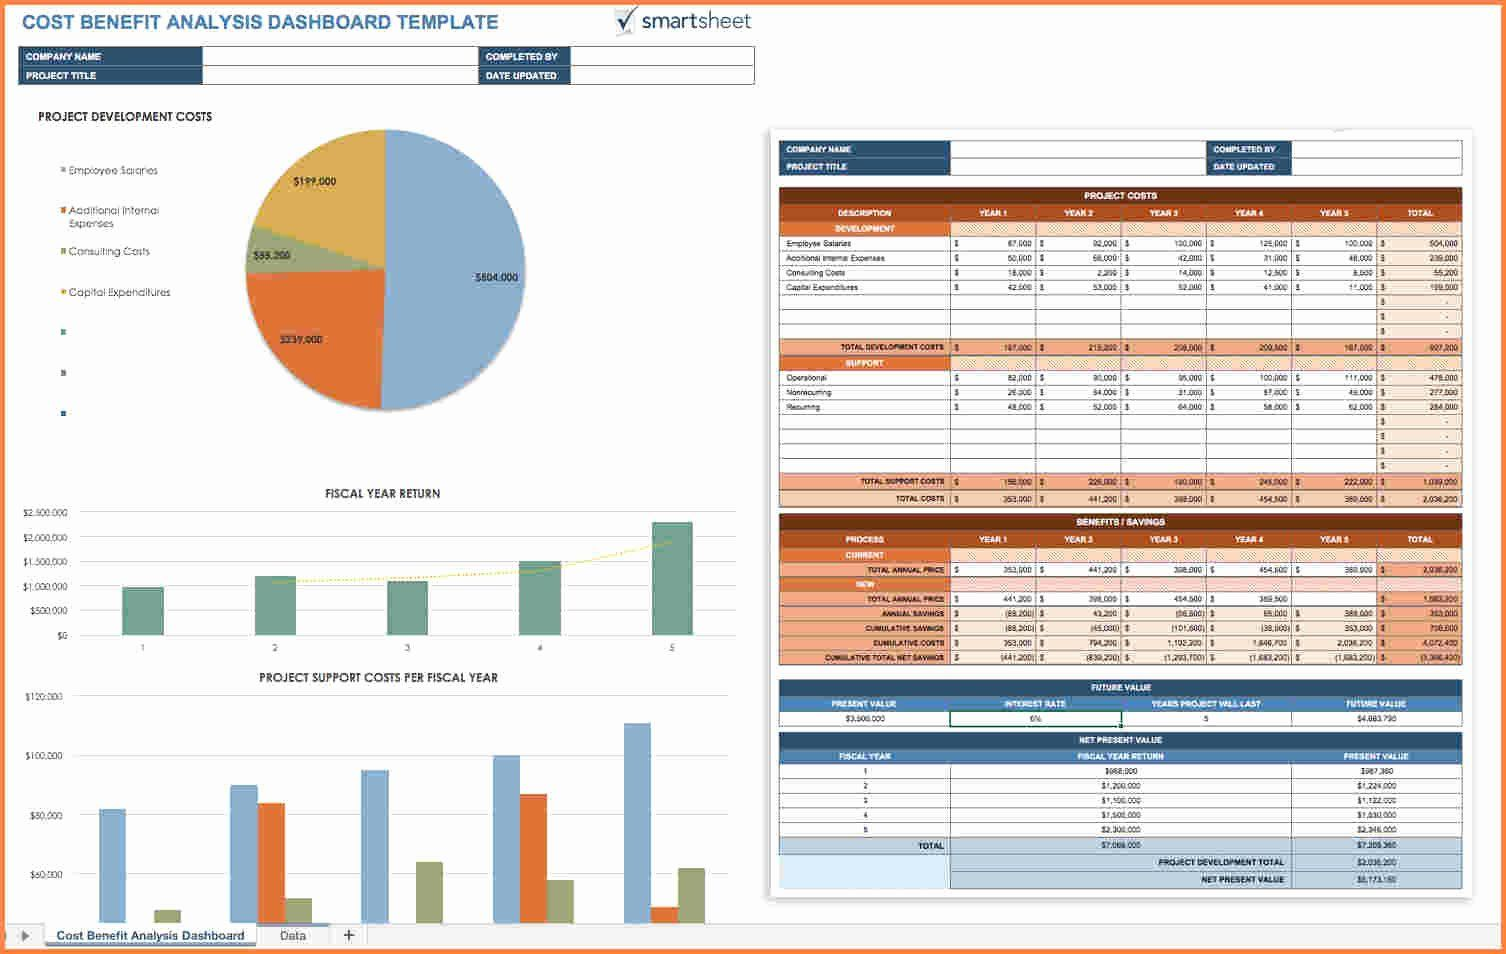 Cost Benefit Analysis Template Excel Awesome 2 How To Make A Cost Analysis Spreadsheet Spreadsheet Template Excel Spreadsheets Excel Budget Template Cost benefit analysis template excel